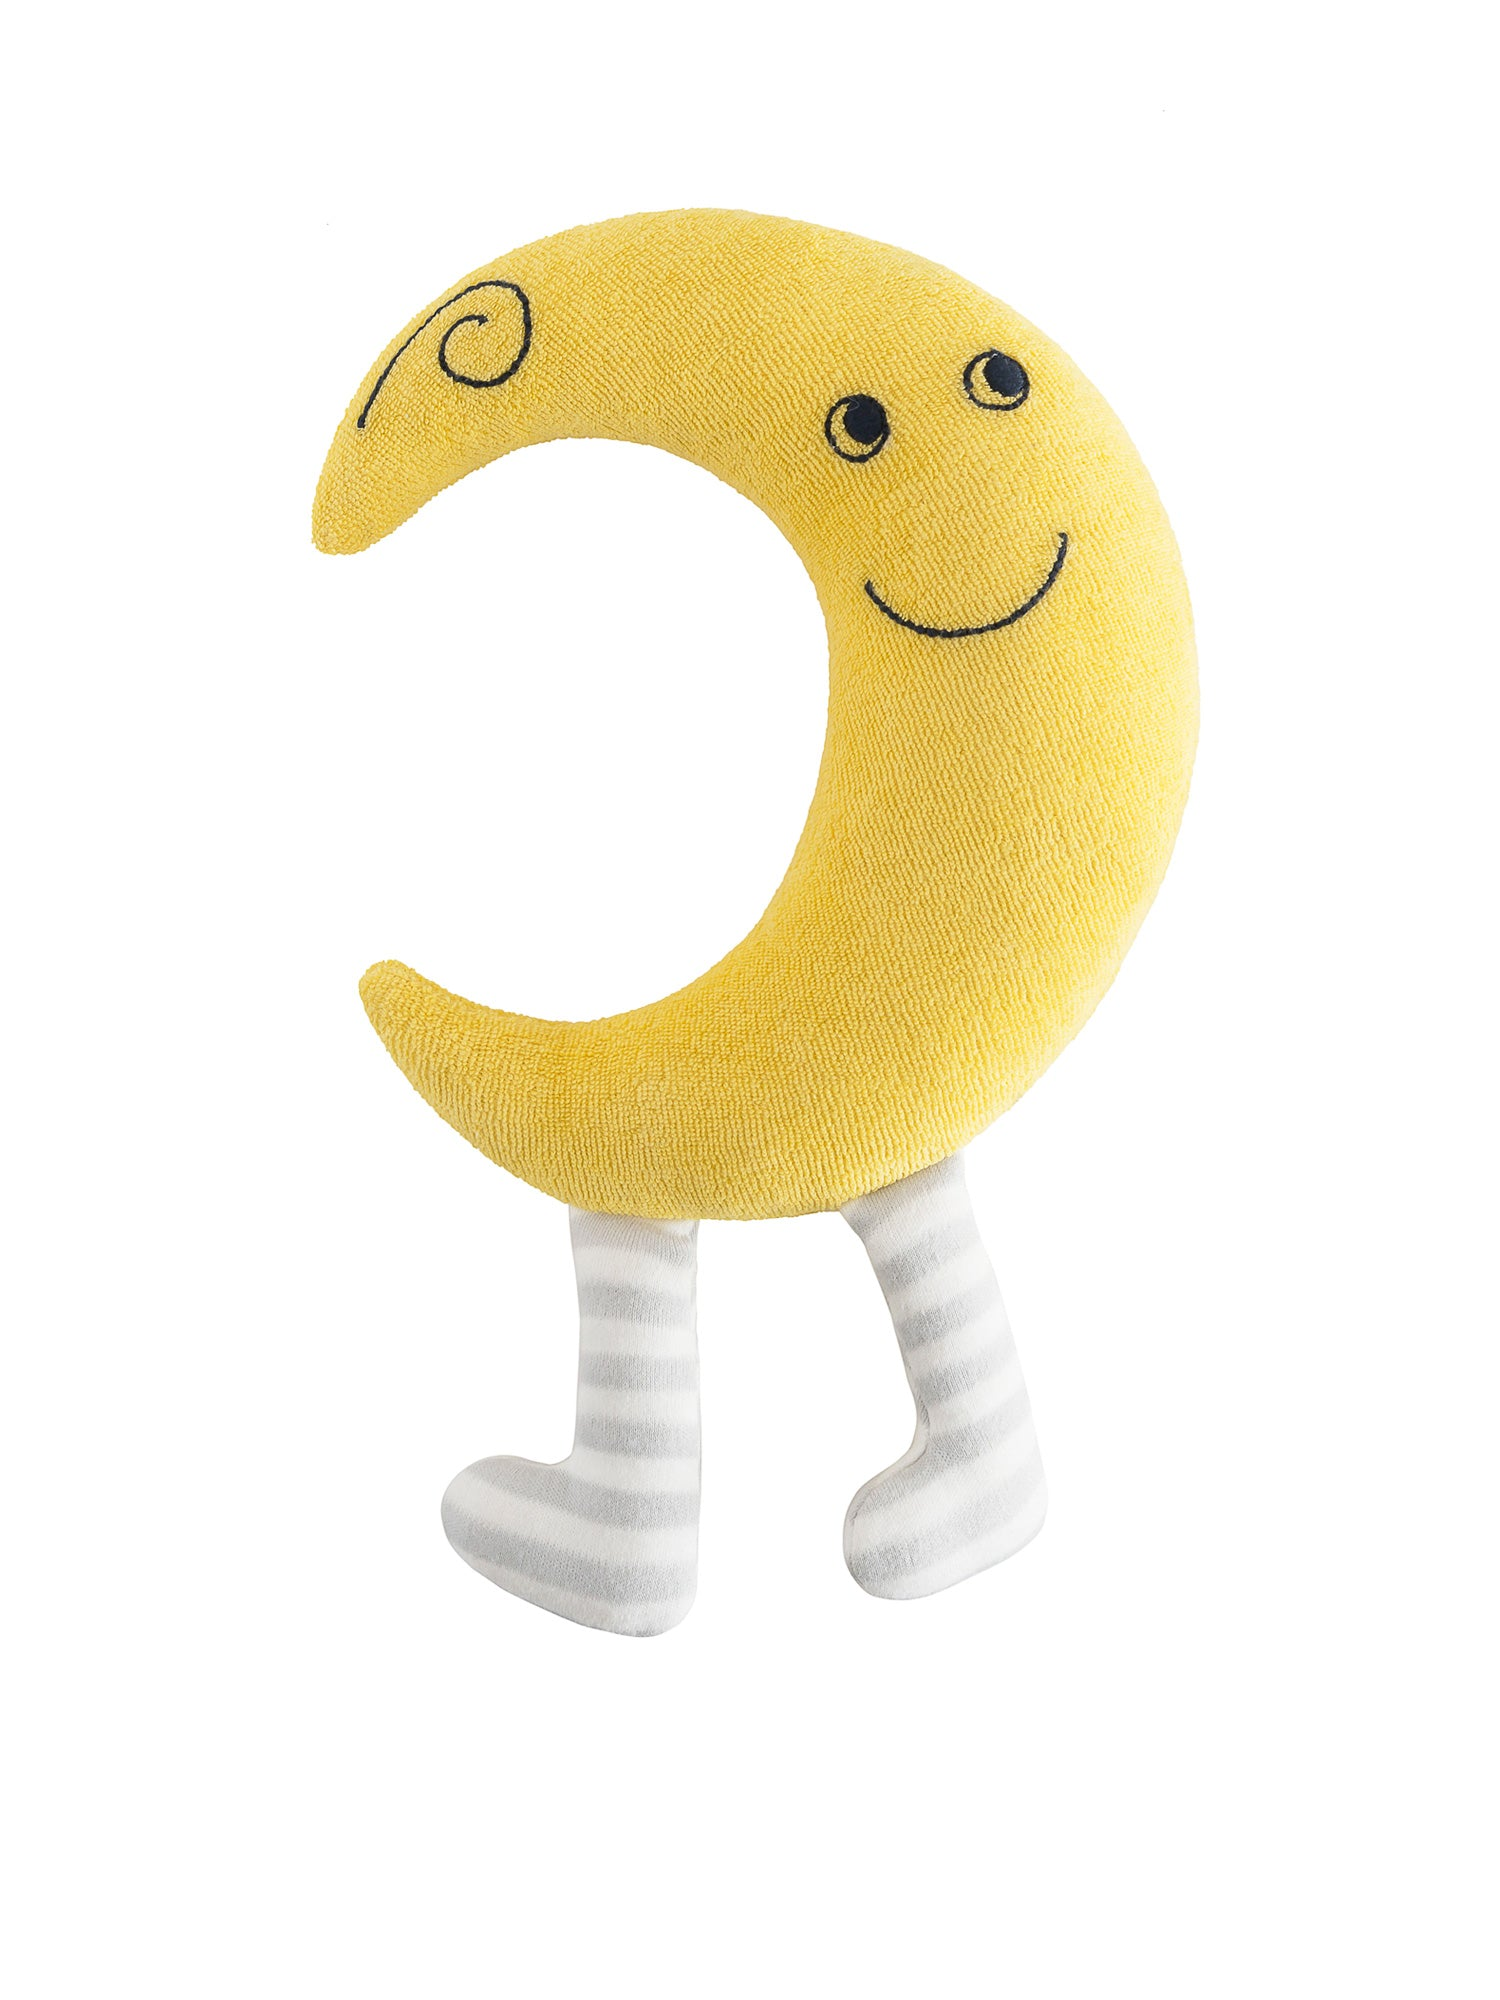 crissy-the-crescent-moon-organic-stuffed-toy